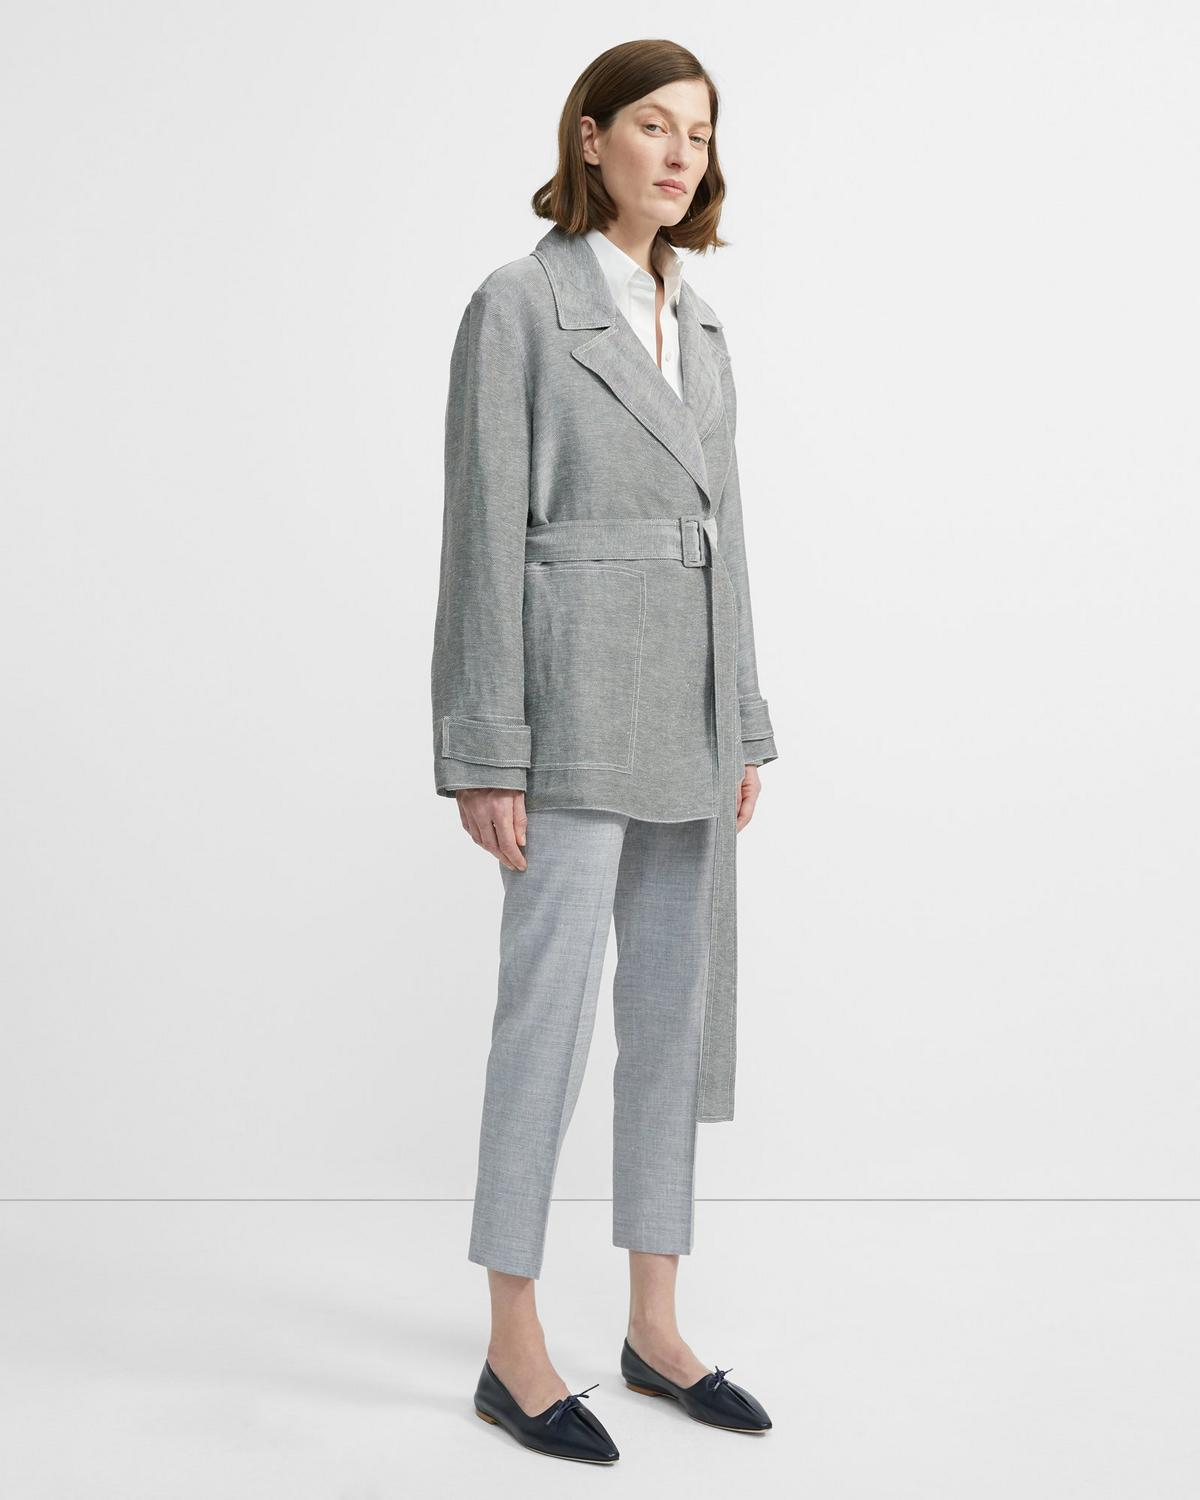 Linen Twill Short Trench 0 - click to view larger image